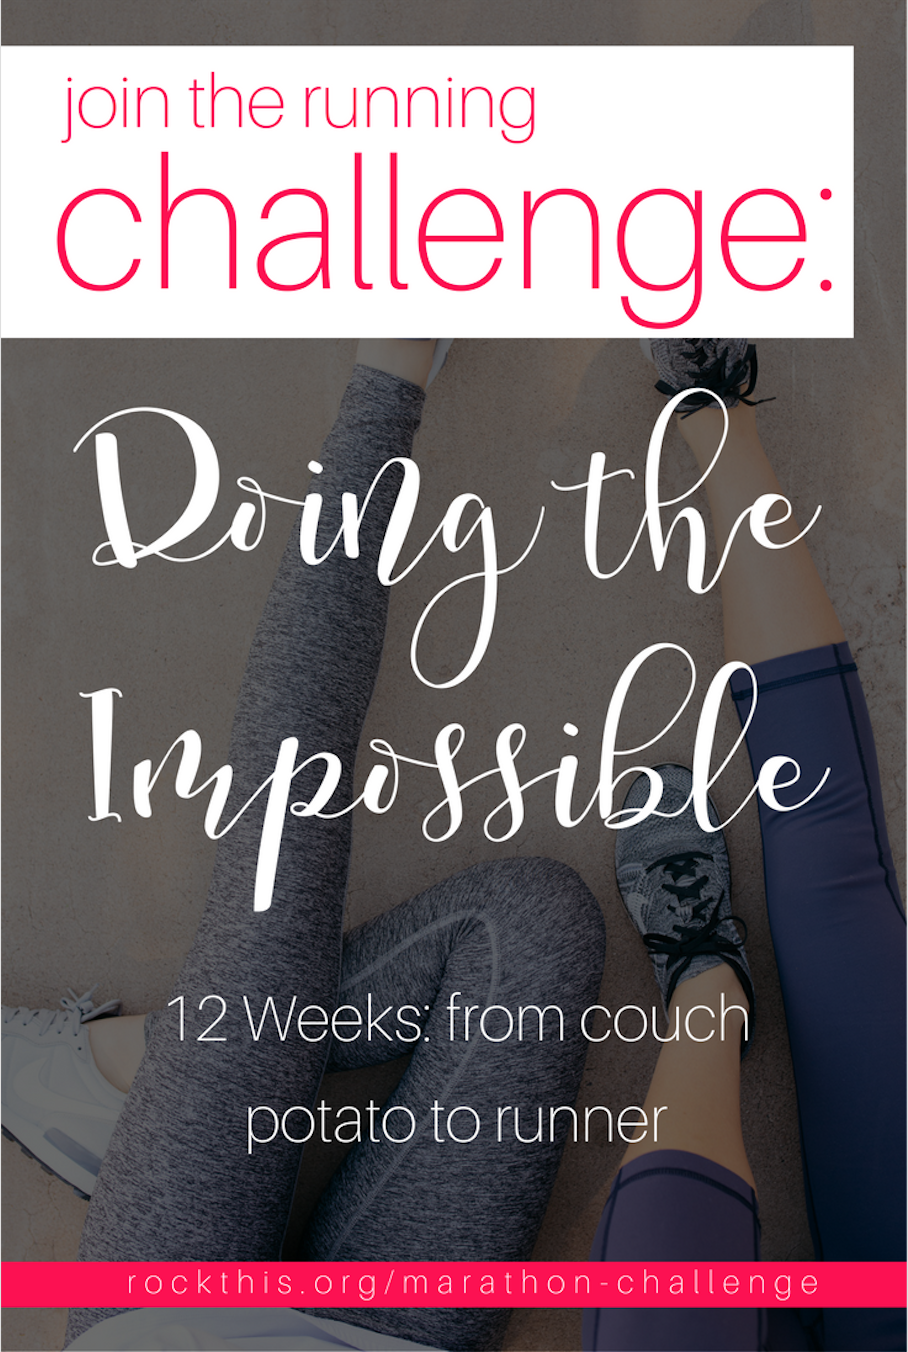 Need something to shake up your daily routine? Ready to stretch yourself to do the impossible? This is the challenge for you! Learn how to run and go from couch potato to runner in 12 weeks. In addition to becoming physically healthier, you grow spiritually as well. Nothing changes if nothing changes!